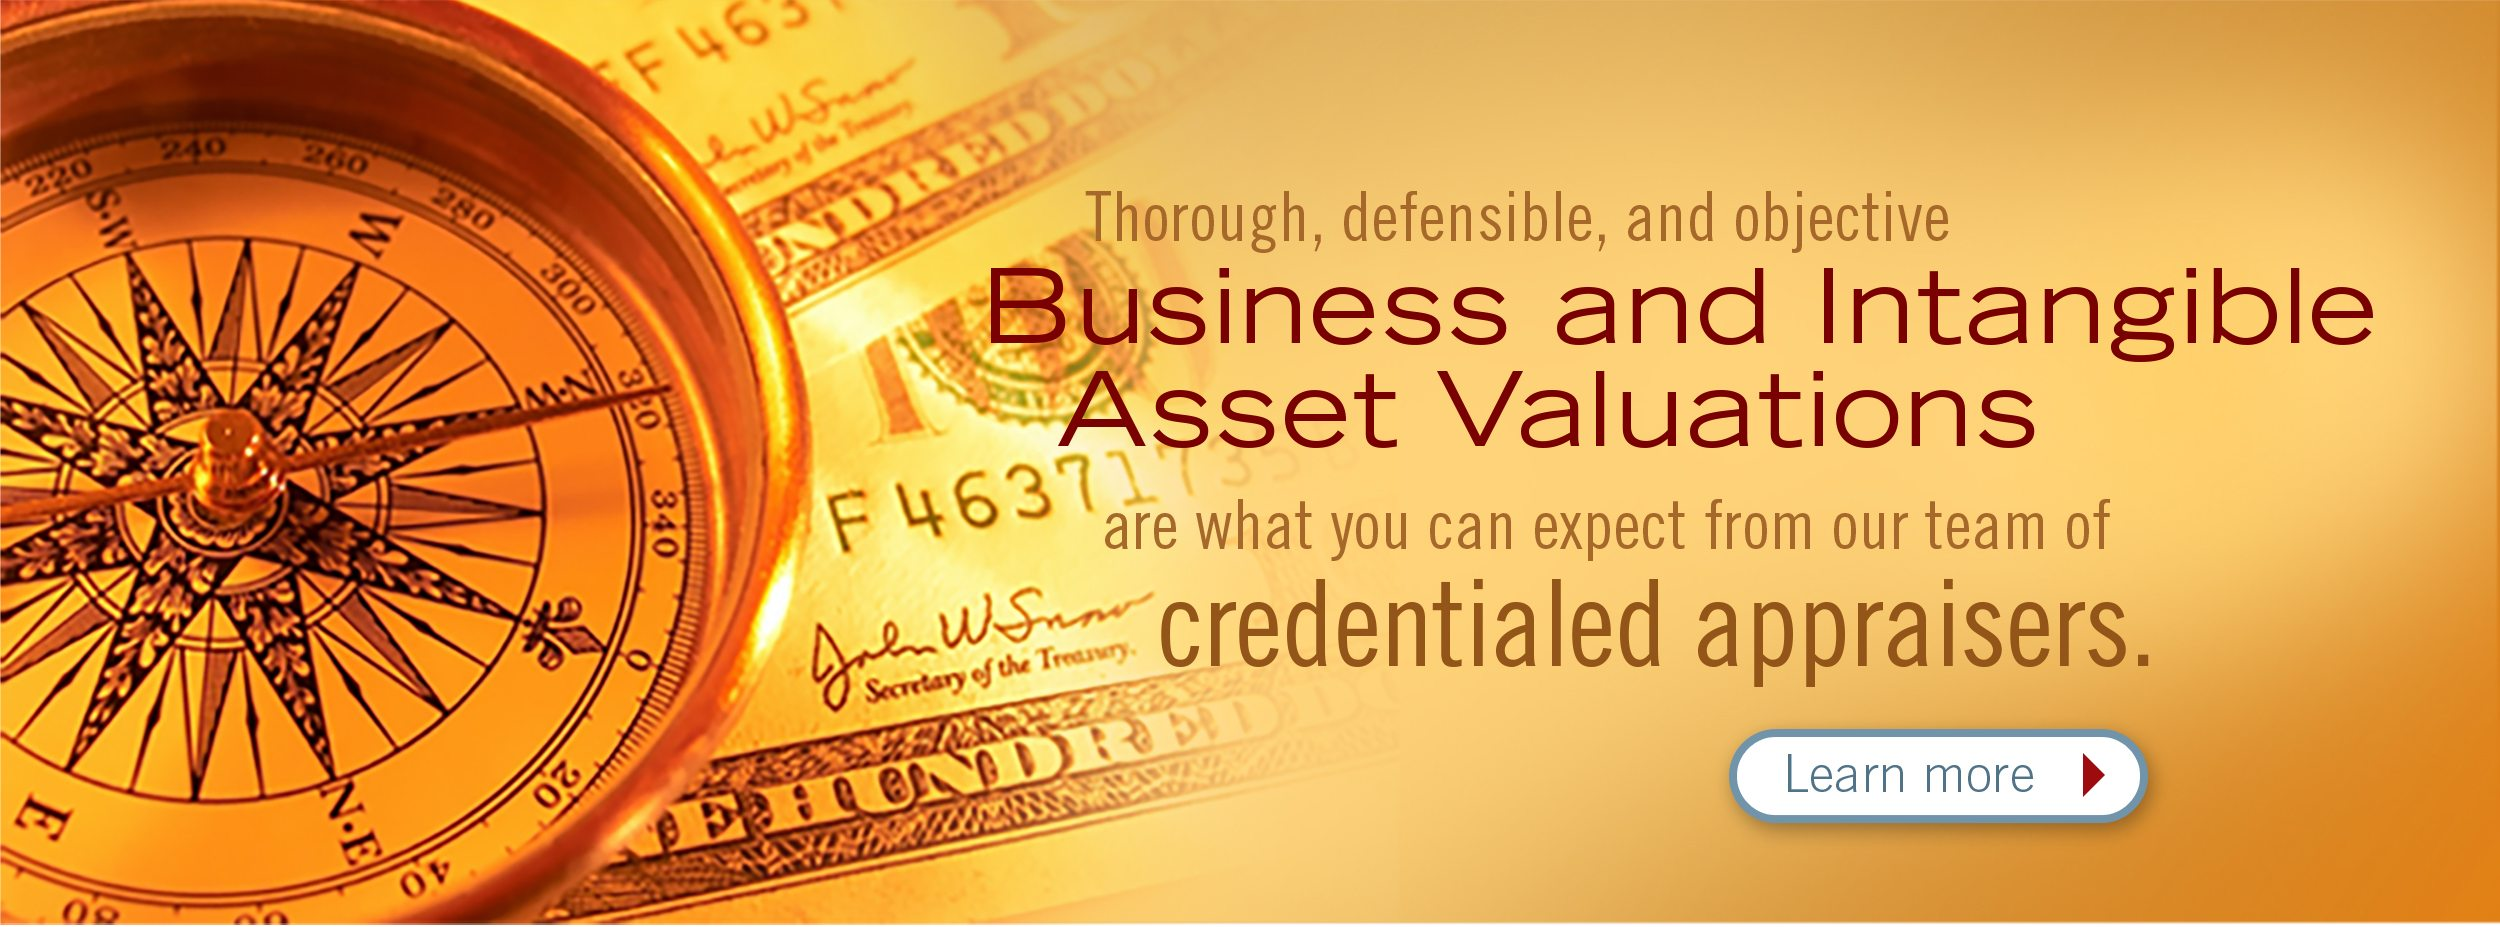 business and intangible asset valuations